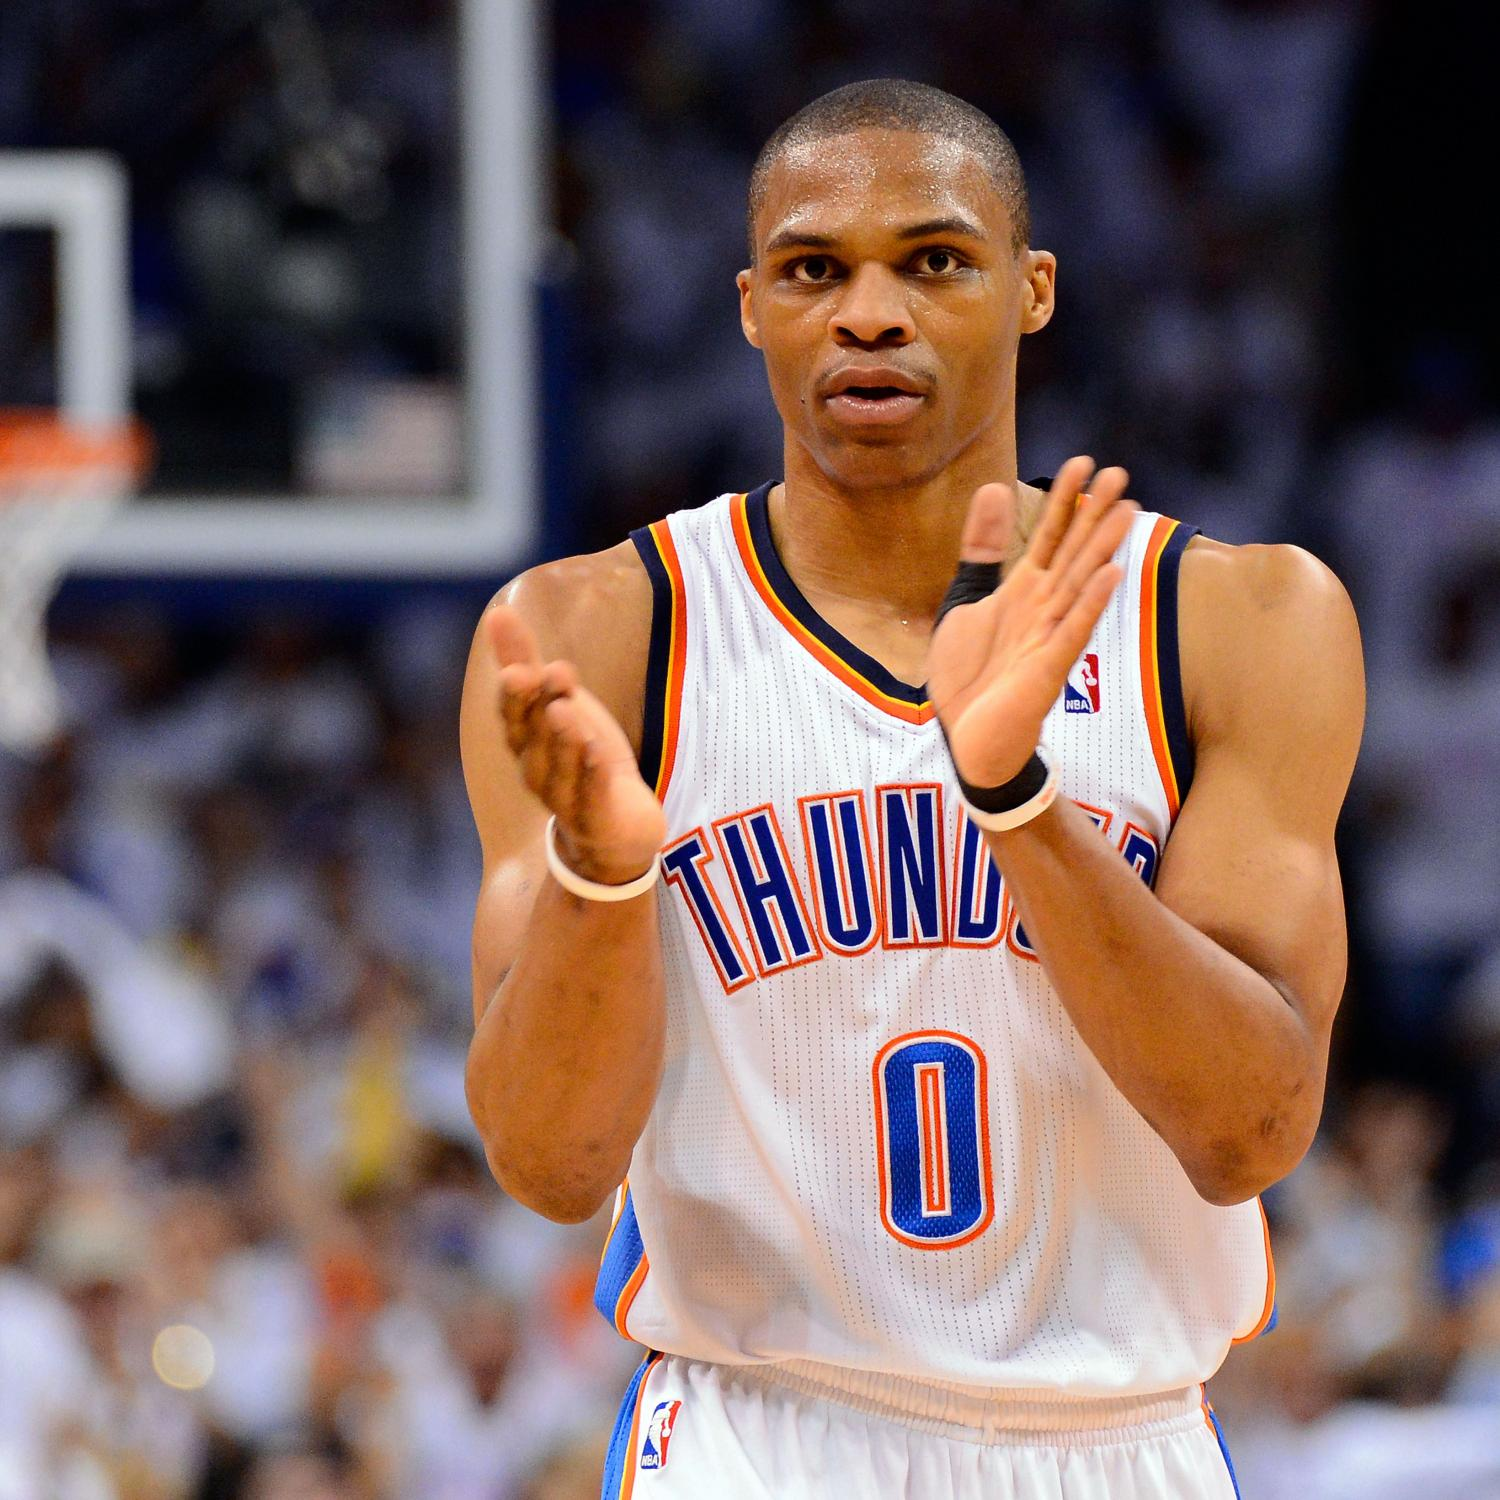 hi-res-145833607-russell-westbrook-of-the-oklahoma-city-thunder-reacts_crop_exact